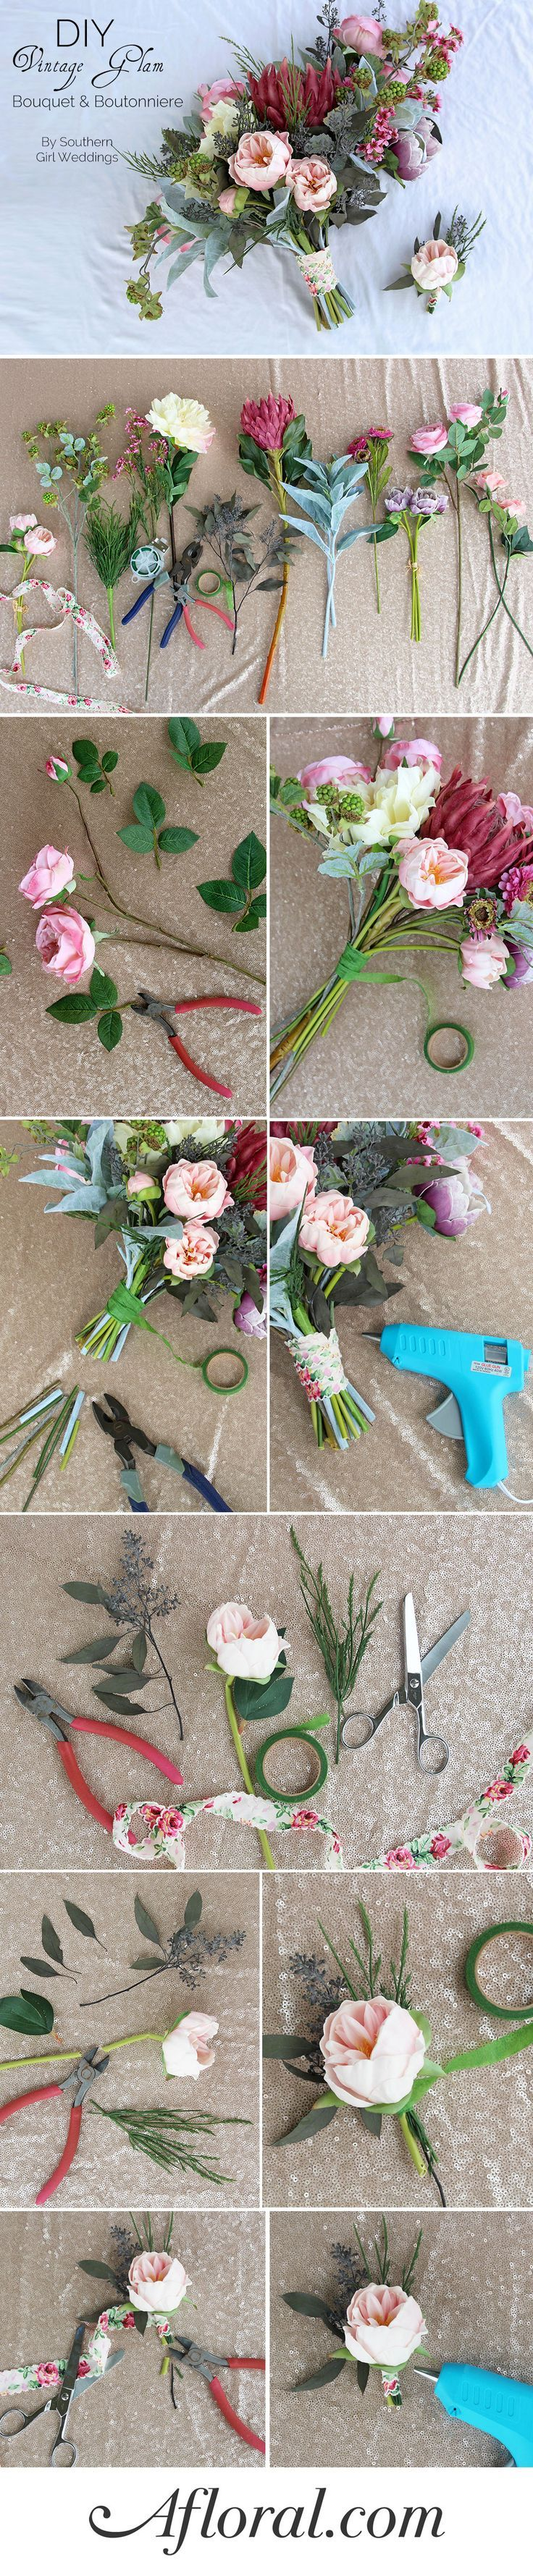 Learn how to make your own wedding bouquets and matching boutonnieres with this simple DIY from Southern Girl Weddings with flowers from http://afloral.com. #diywedding